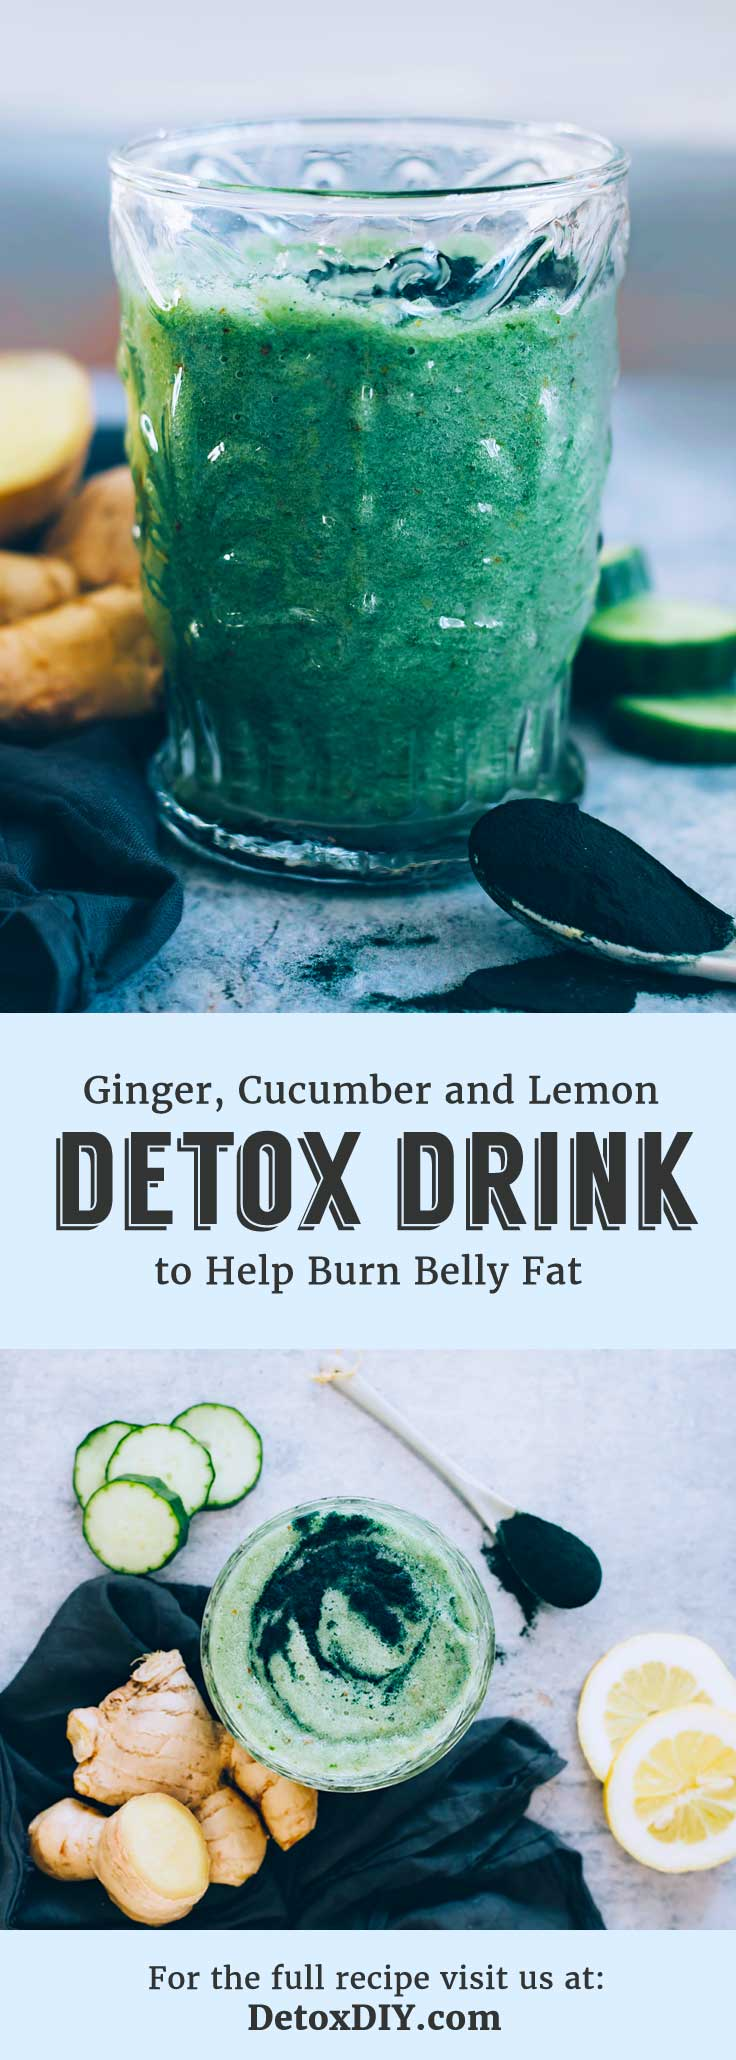 My favorite lemon and cucumber detox drink!